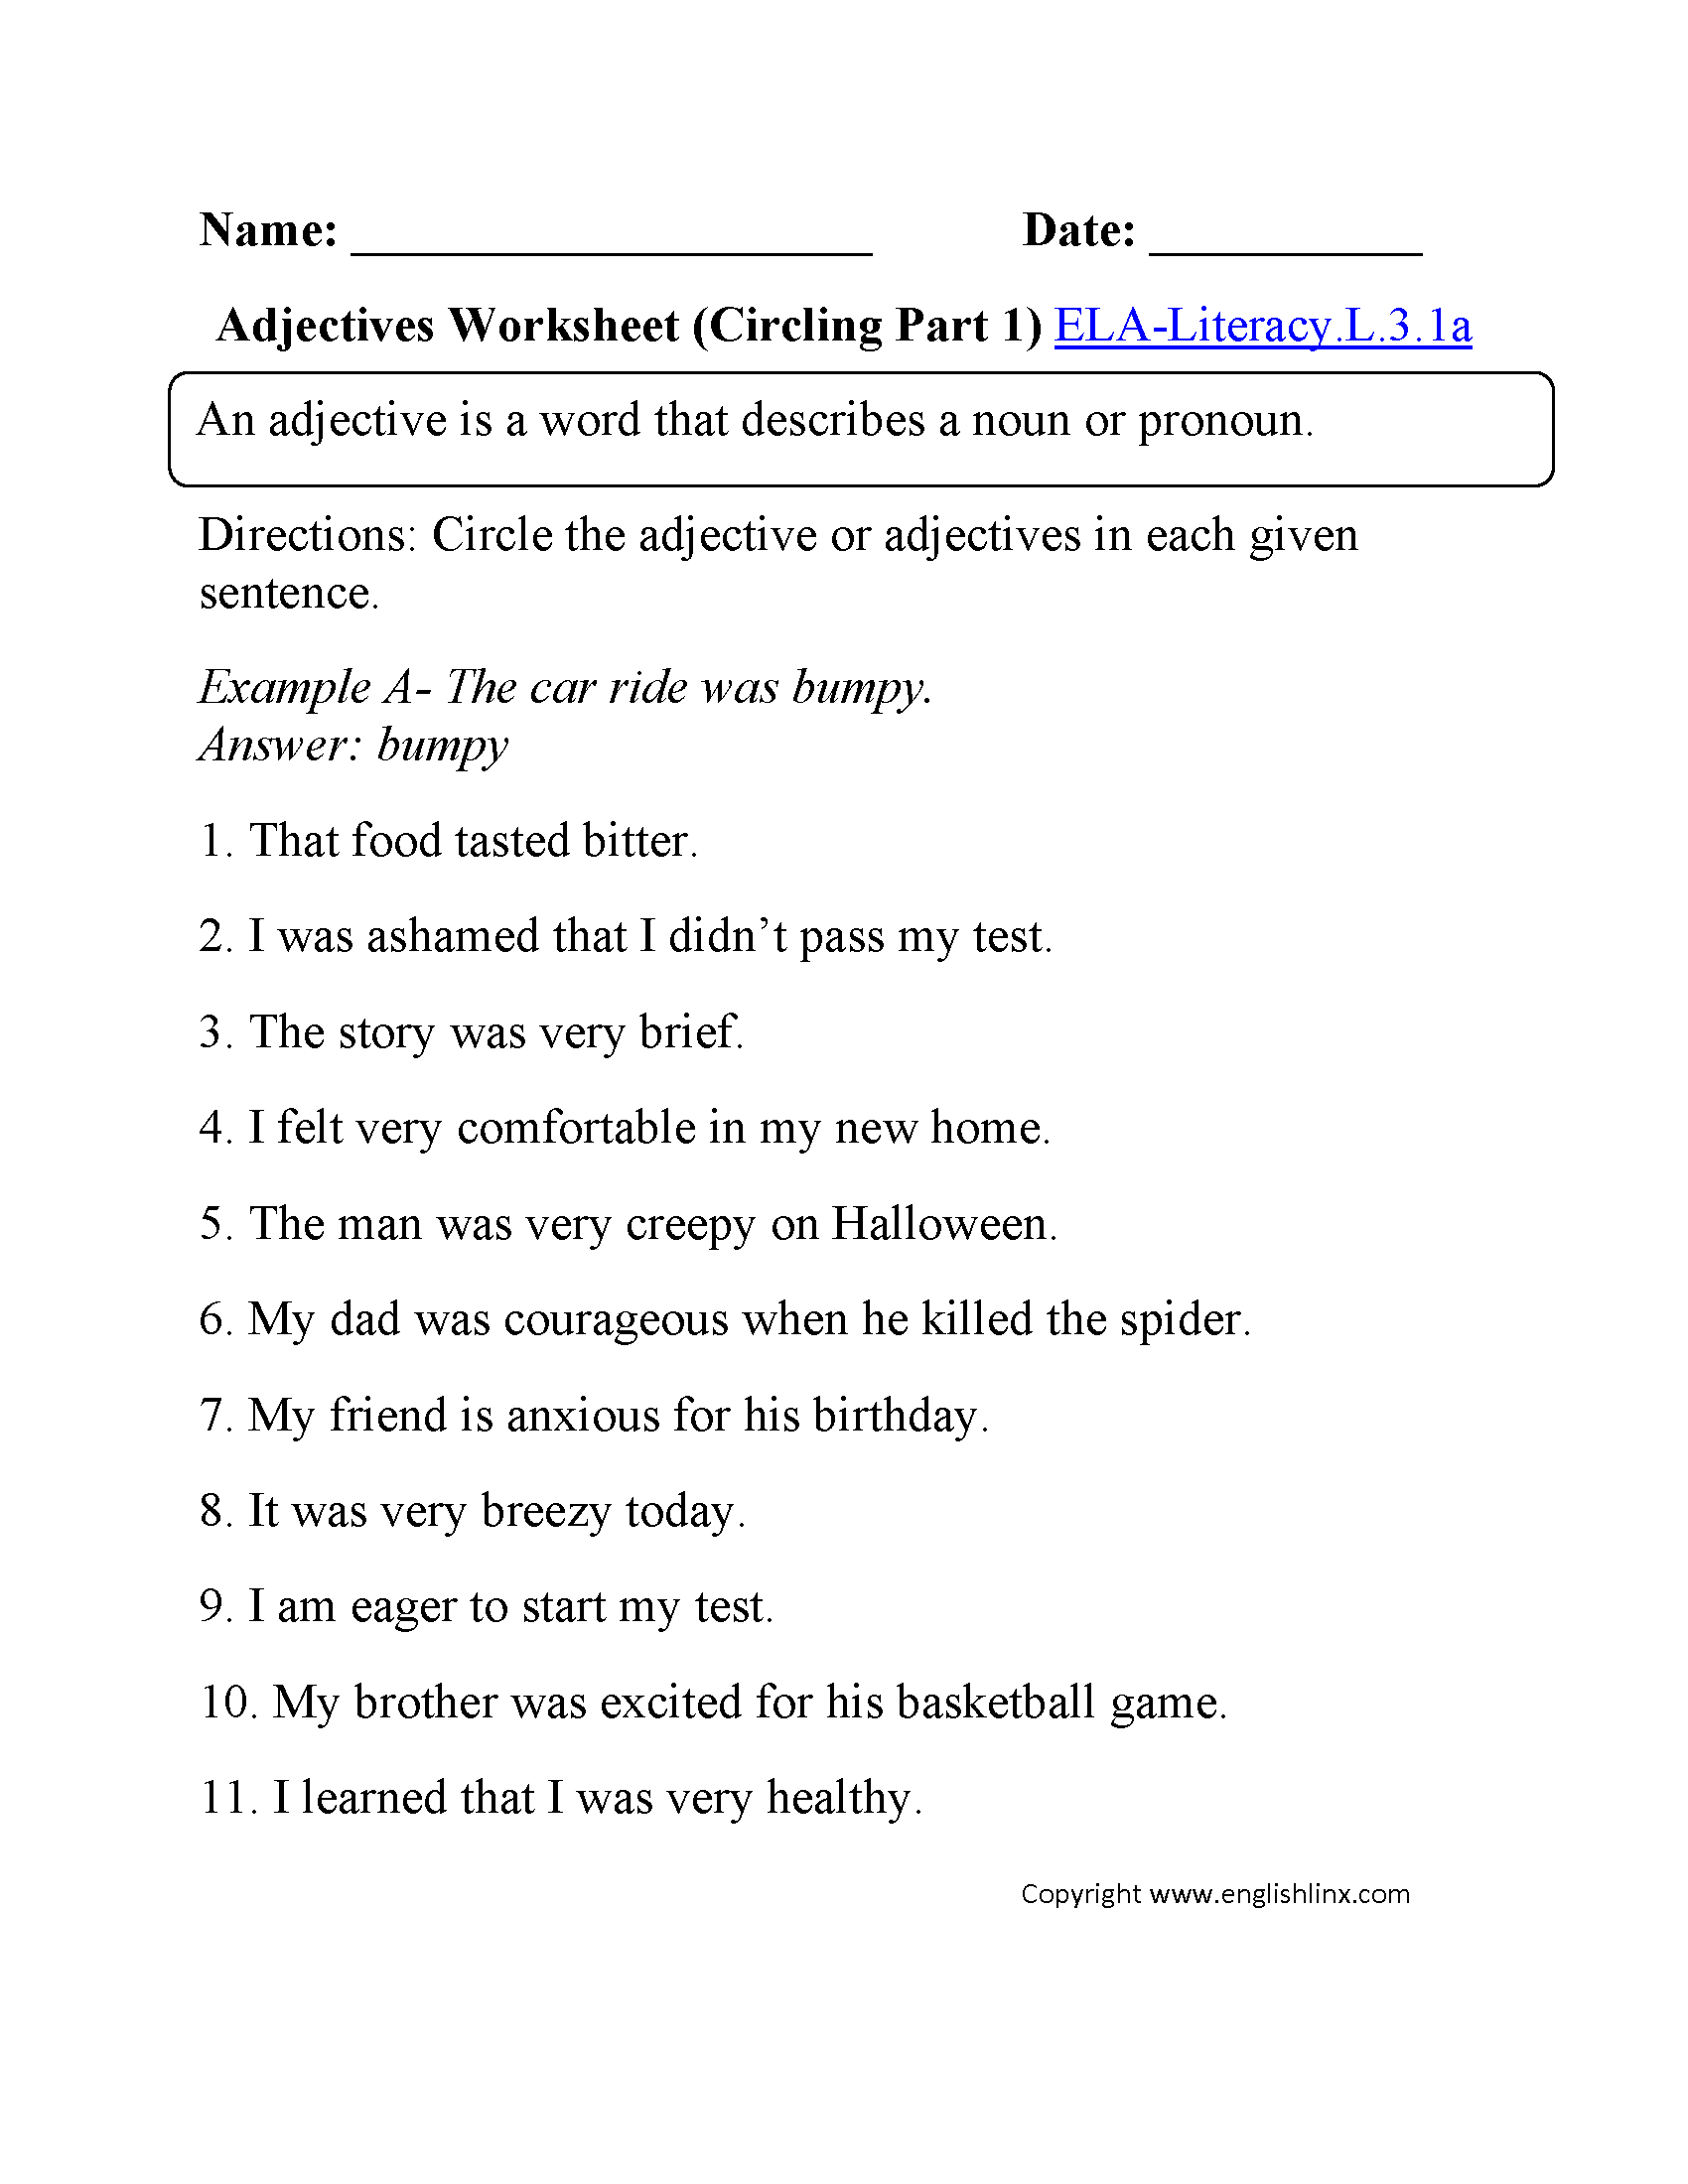 Worksheet Worksheet On Adjectives For Grade 2 adjectives worksheets grade 1 memarchoapraga worksheet adjective exercises for 2 noconformity free